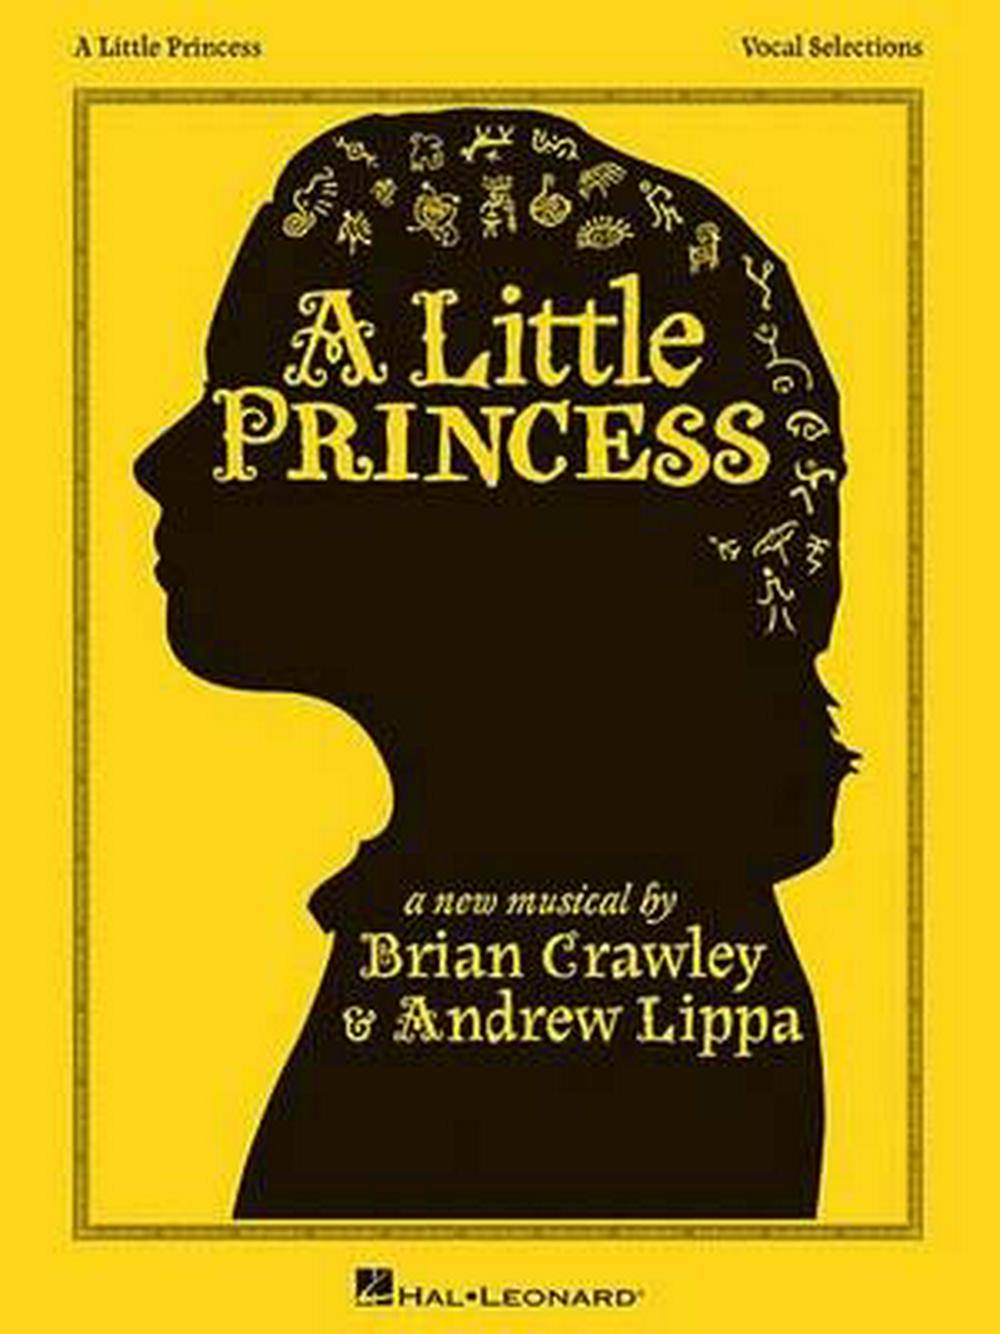 The Little Princess Vocal Selections